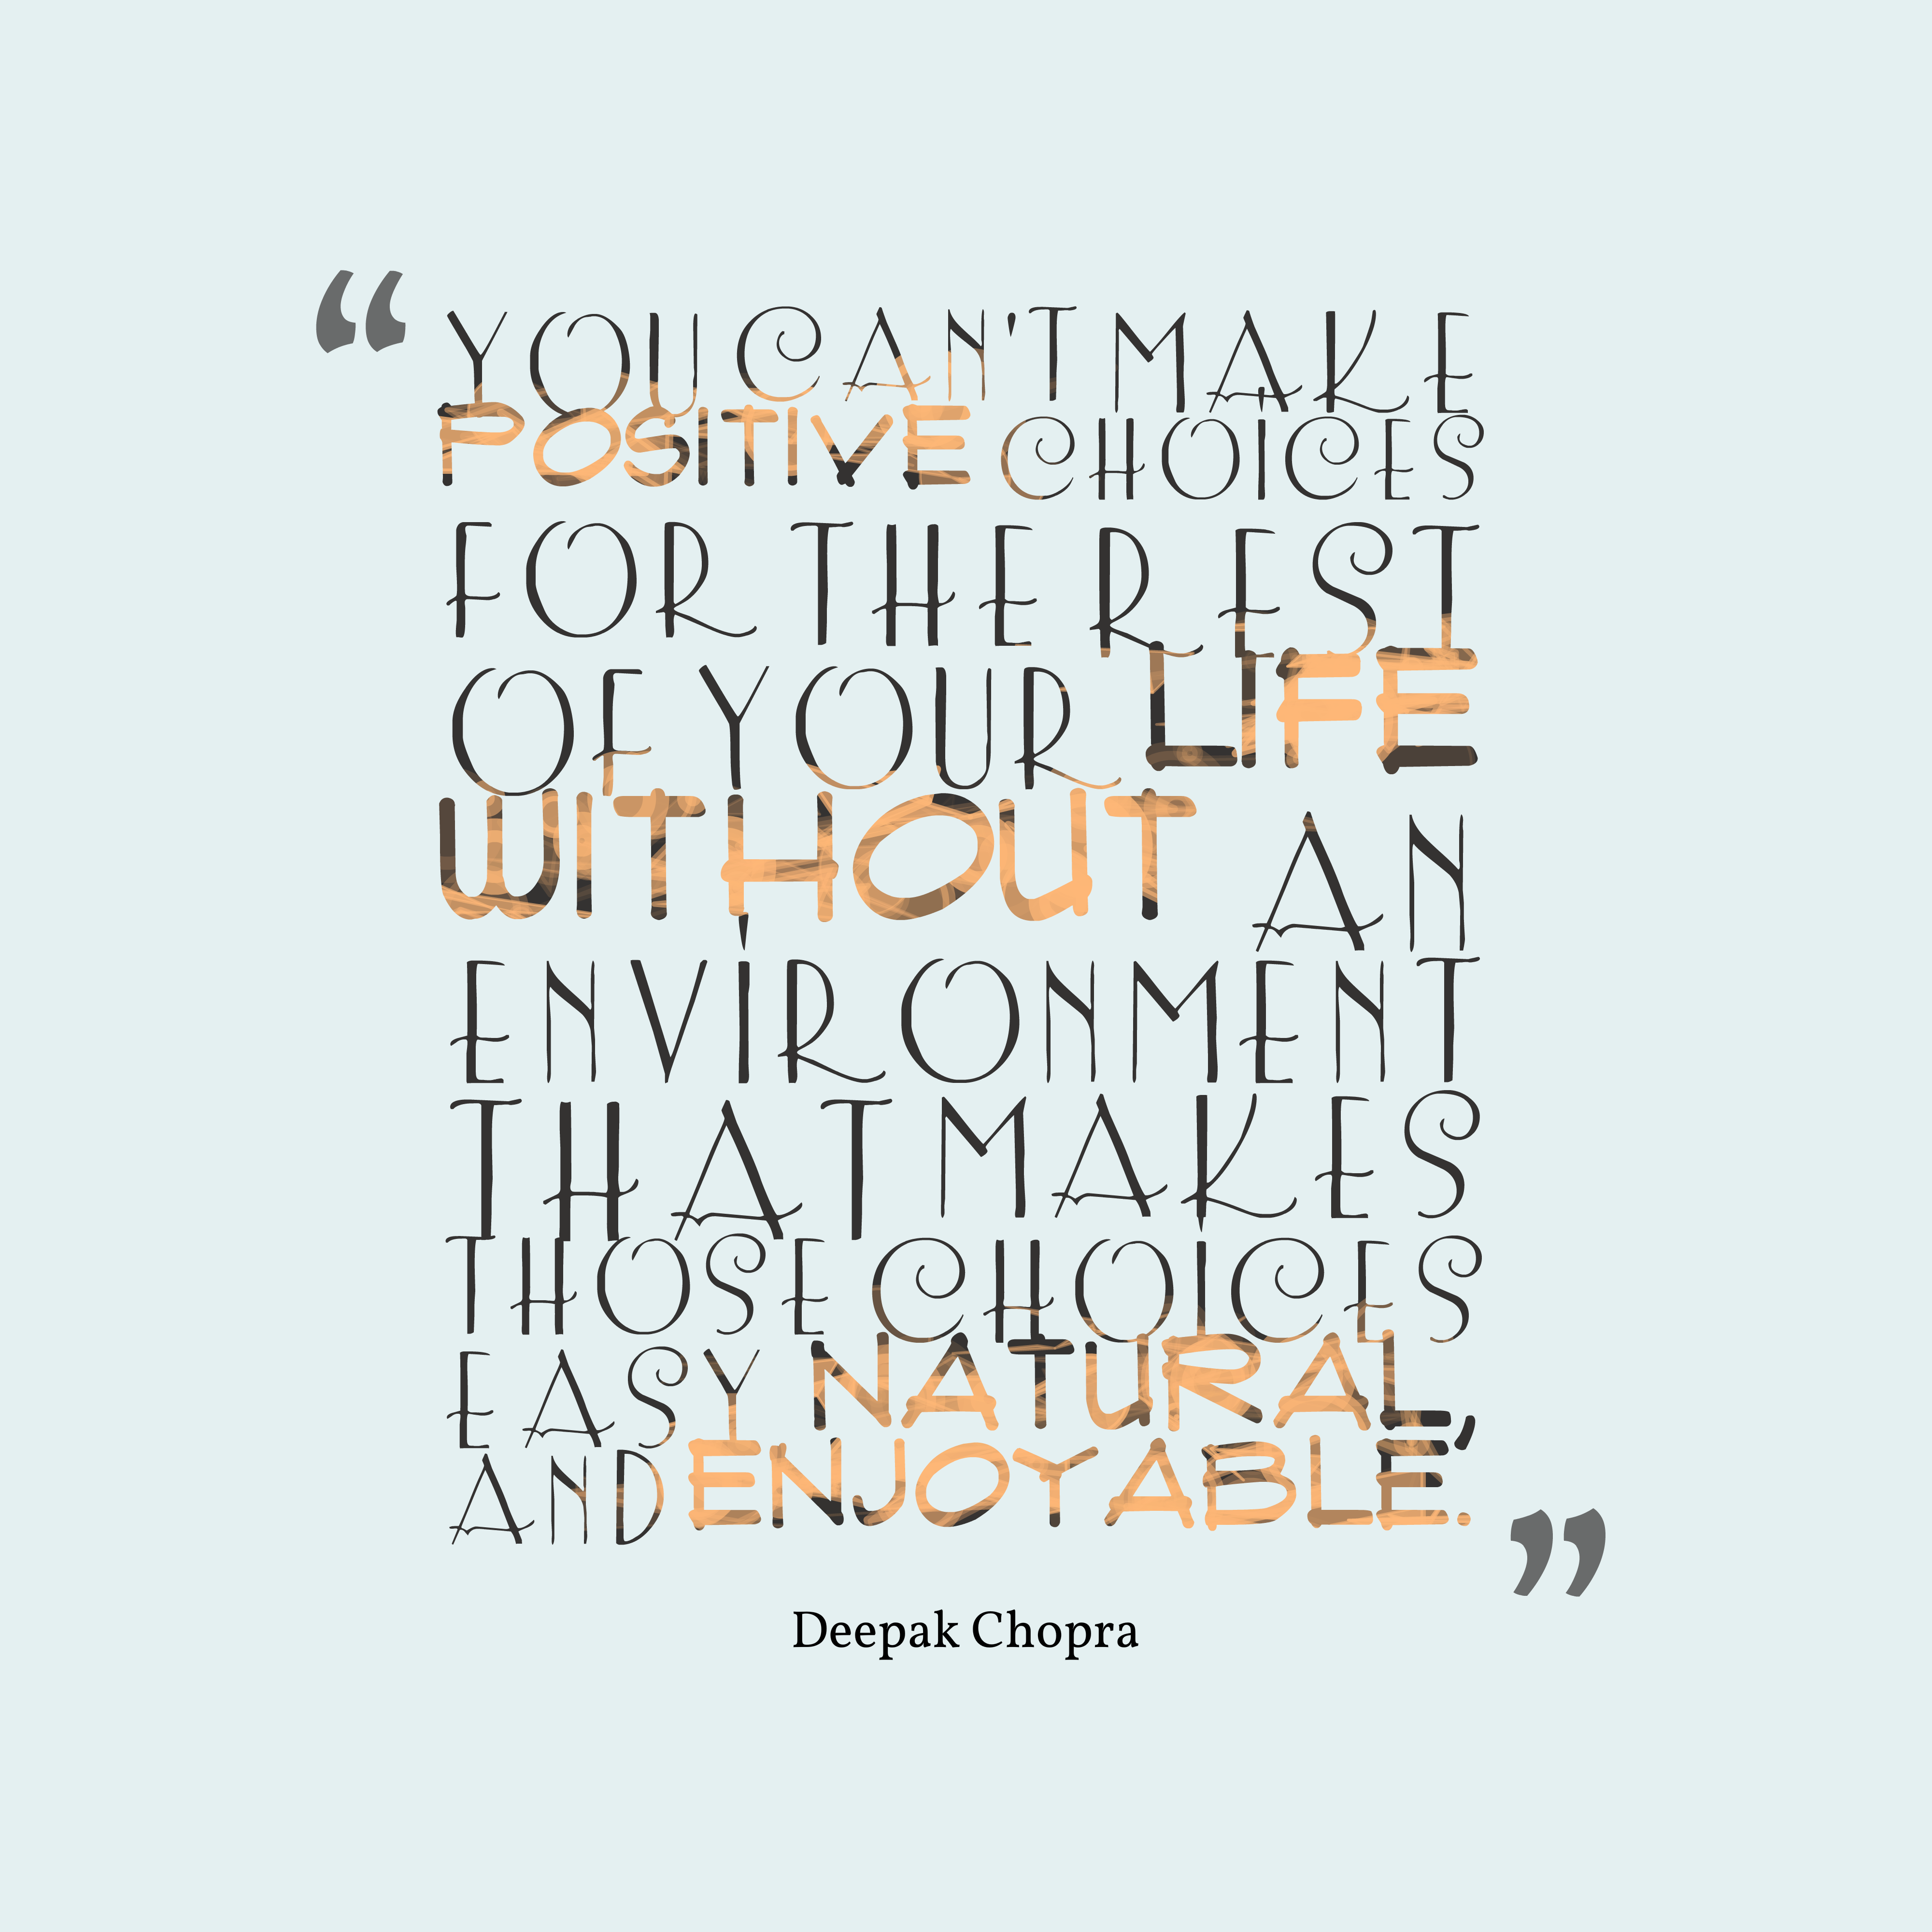 Quotes image of You can't make positive choices for the rest of your life without an environment that makes those choices easy, natural, and enjoyable.